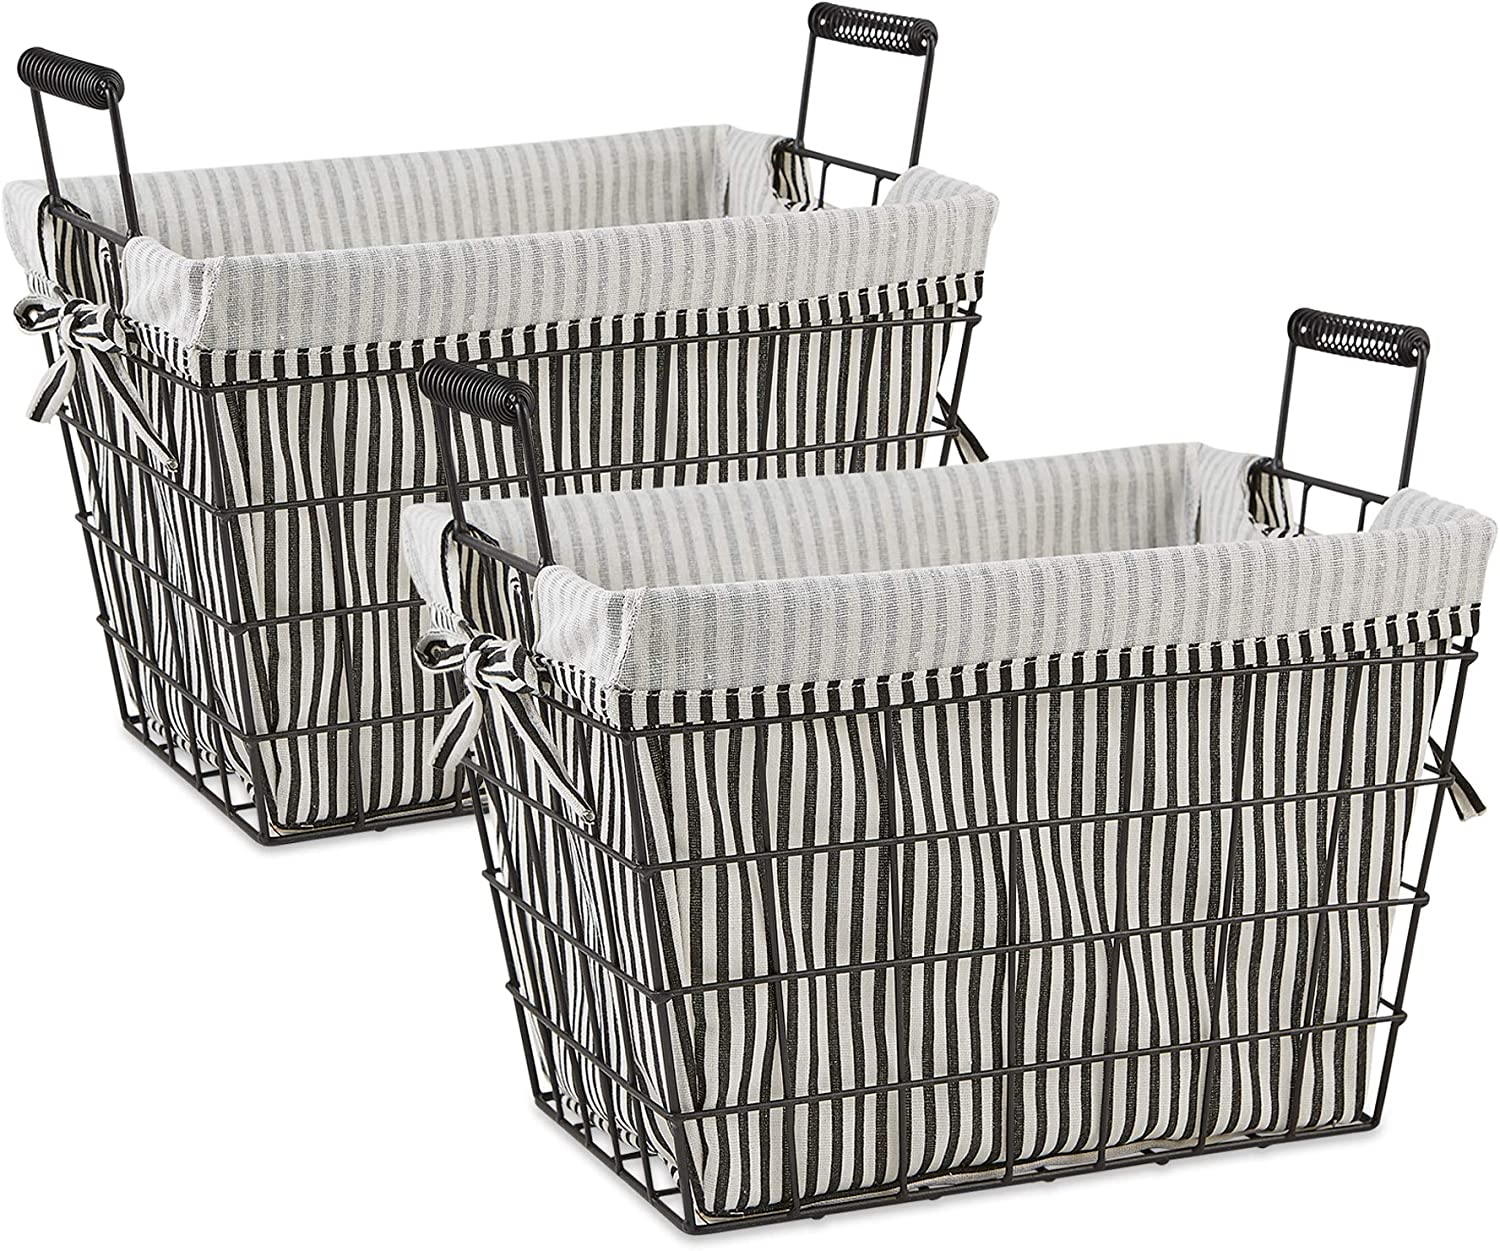 DII Farmhouse Office Collection Metal Storage, Lined Basket, Stripe Liner, 2 Piece